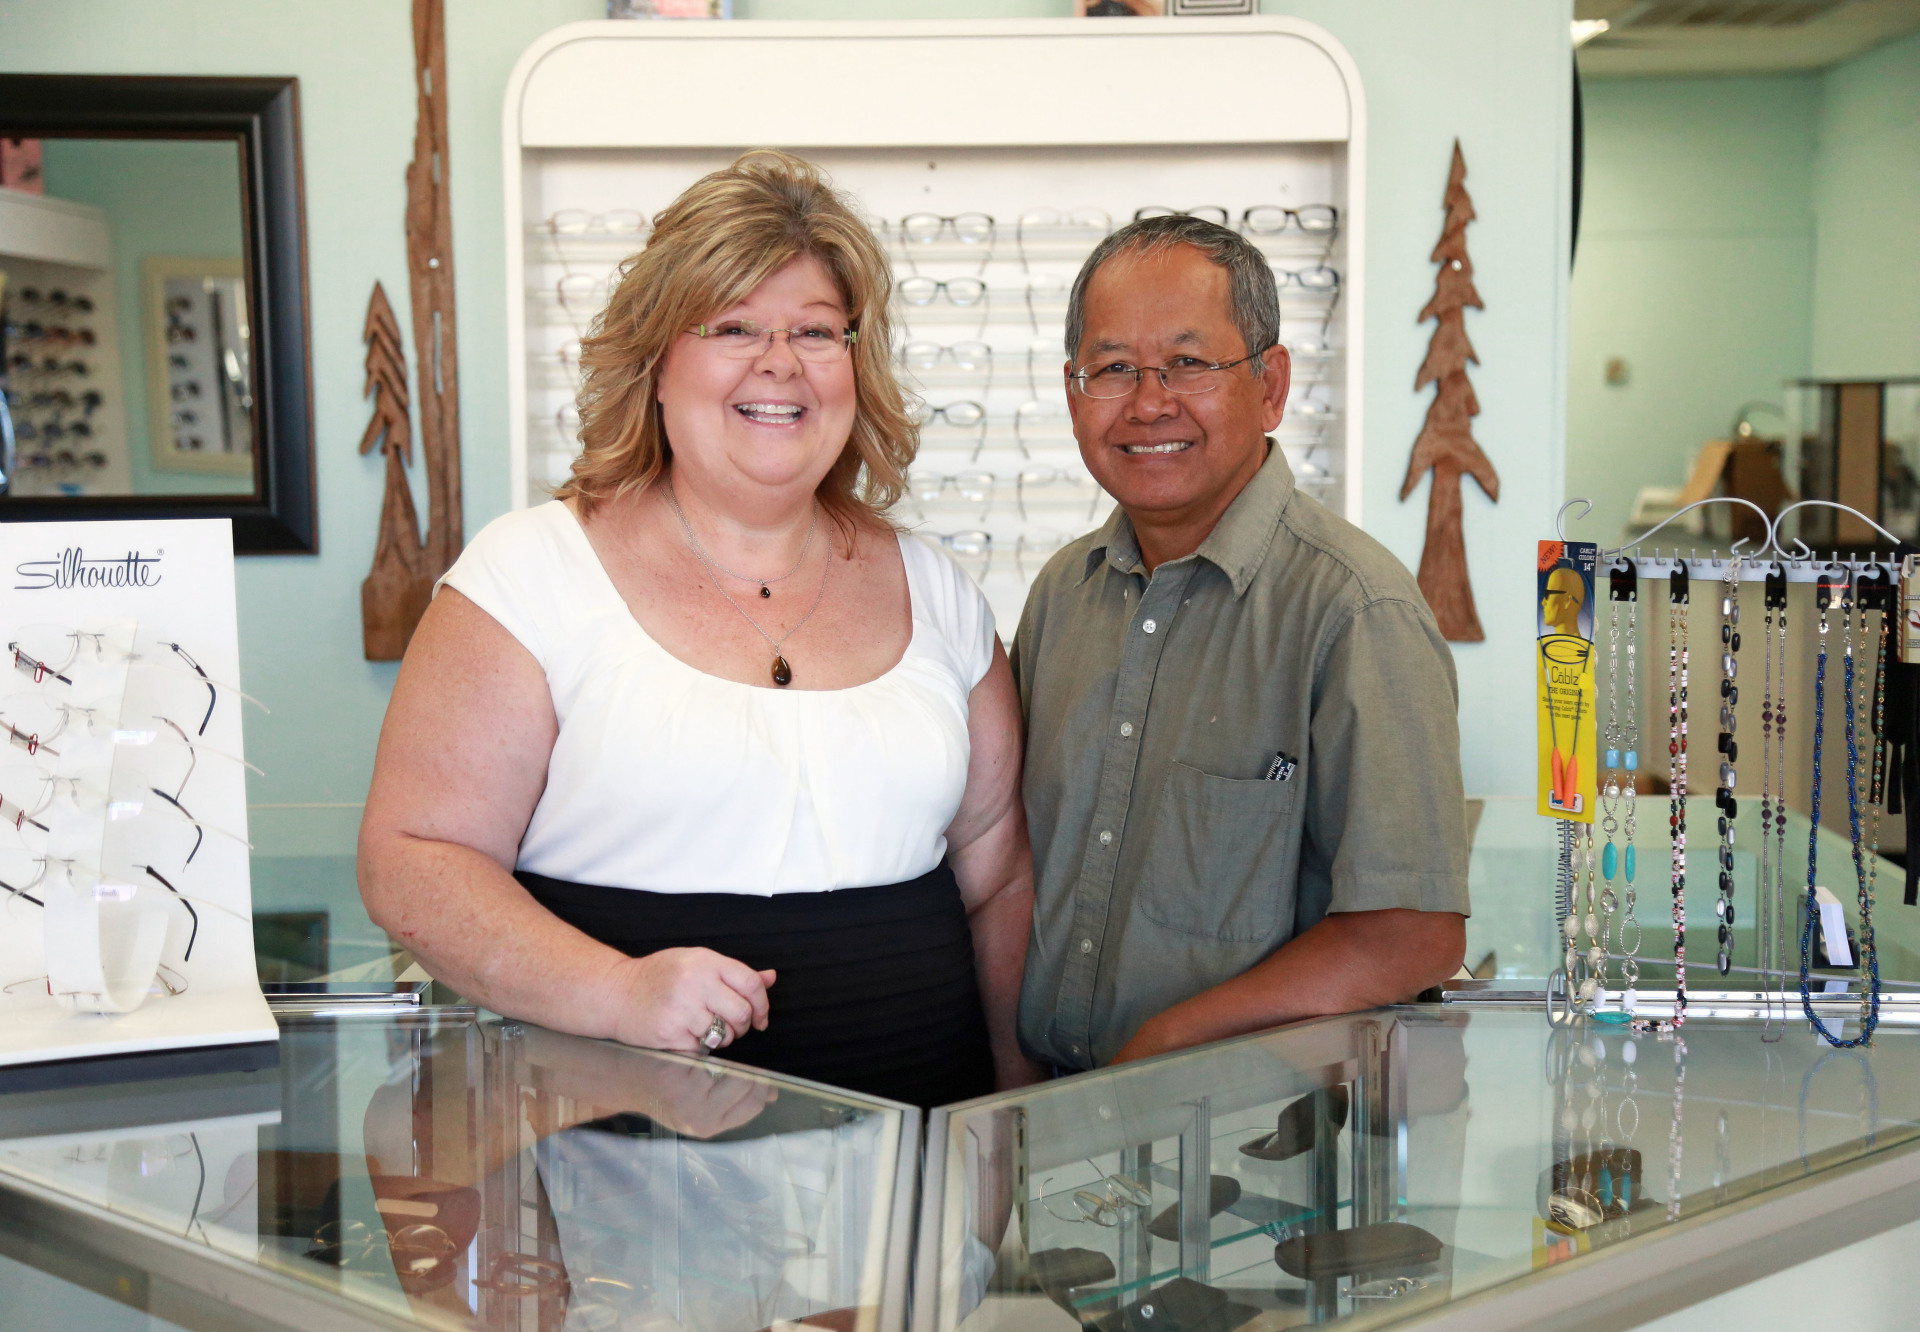 Spectacular Visions and V: Optical Laboratory Owners